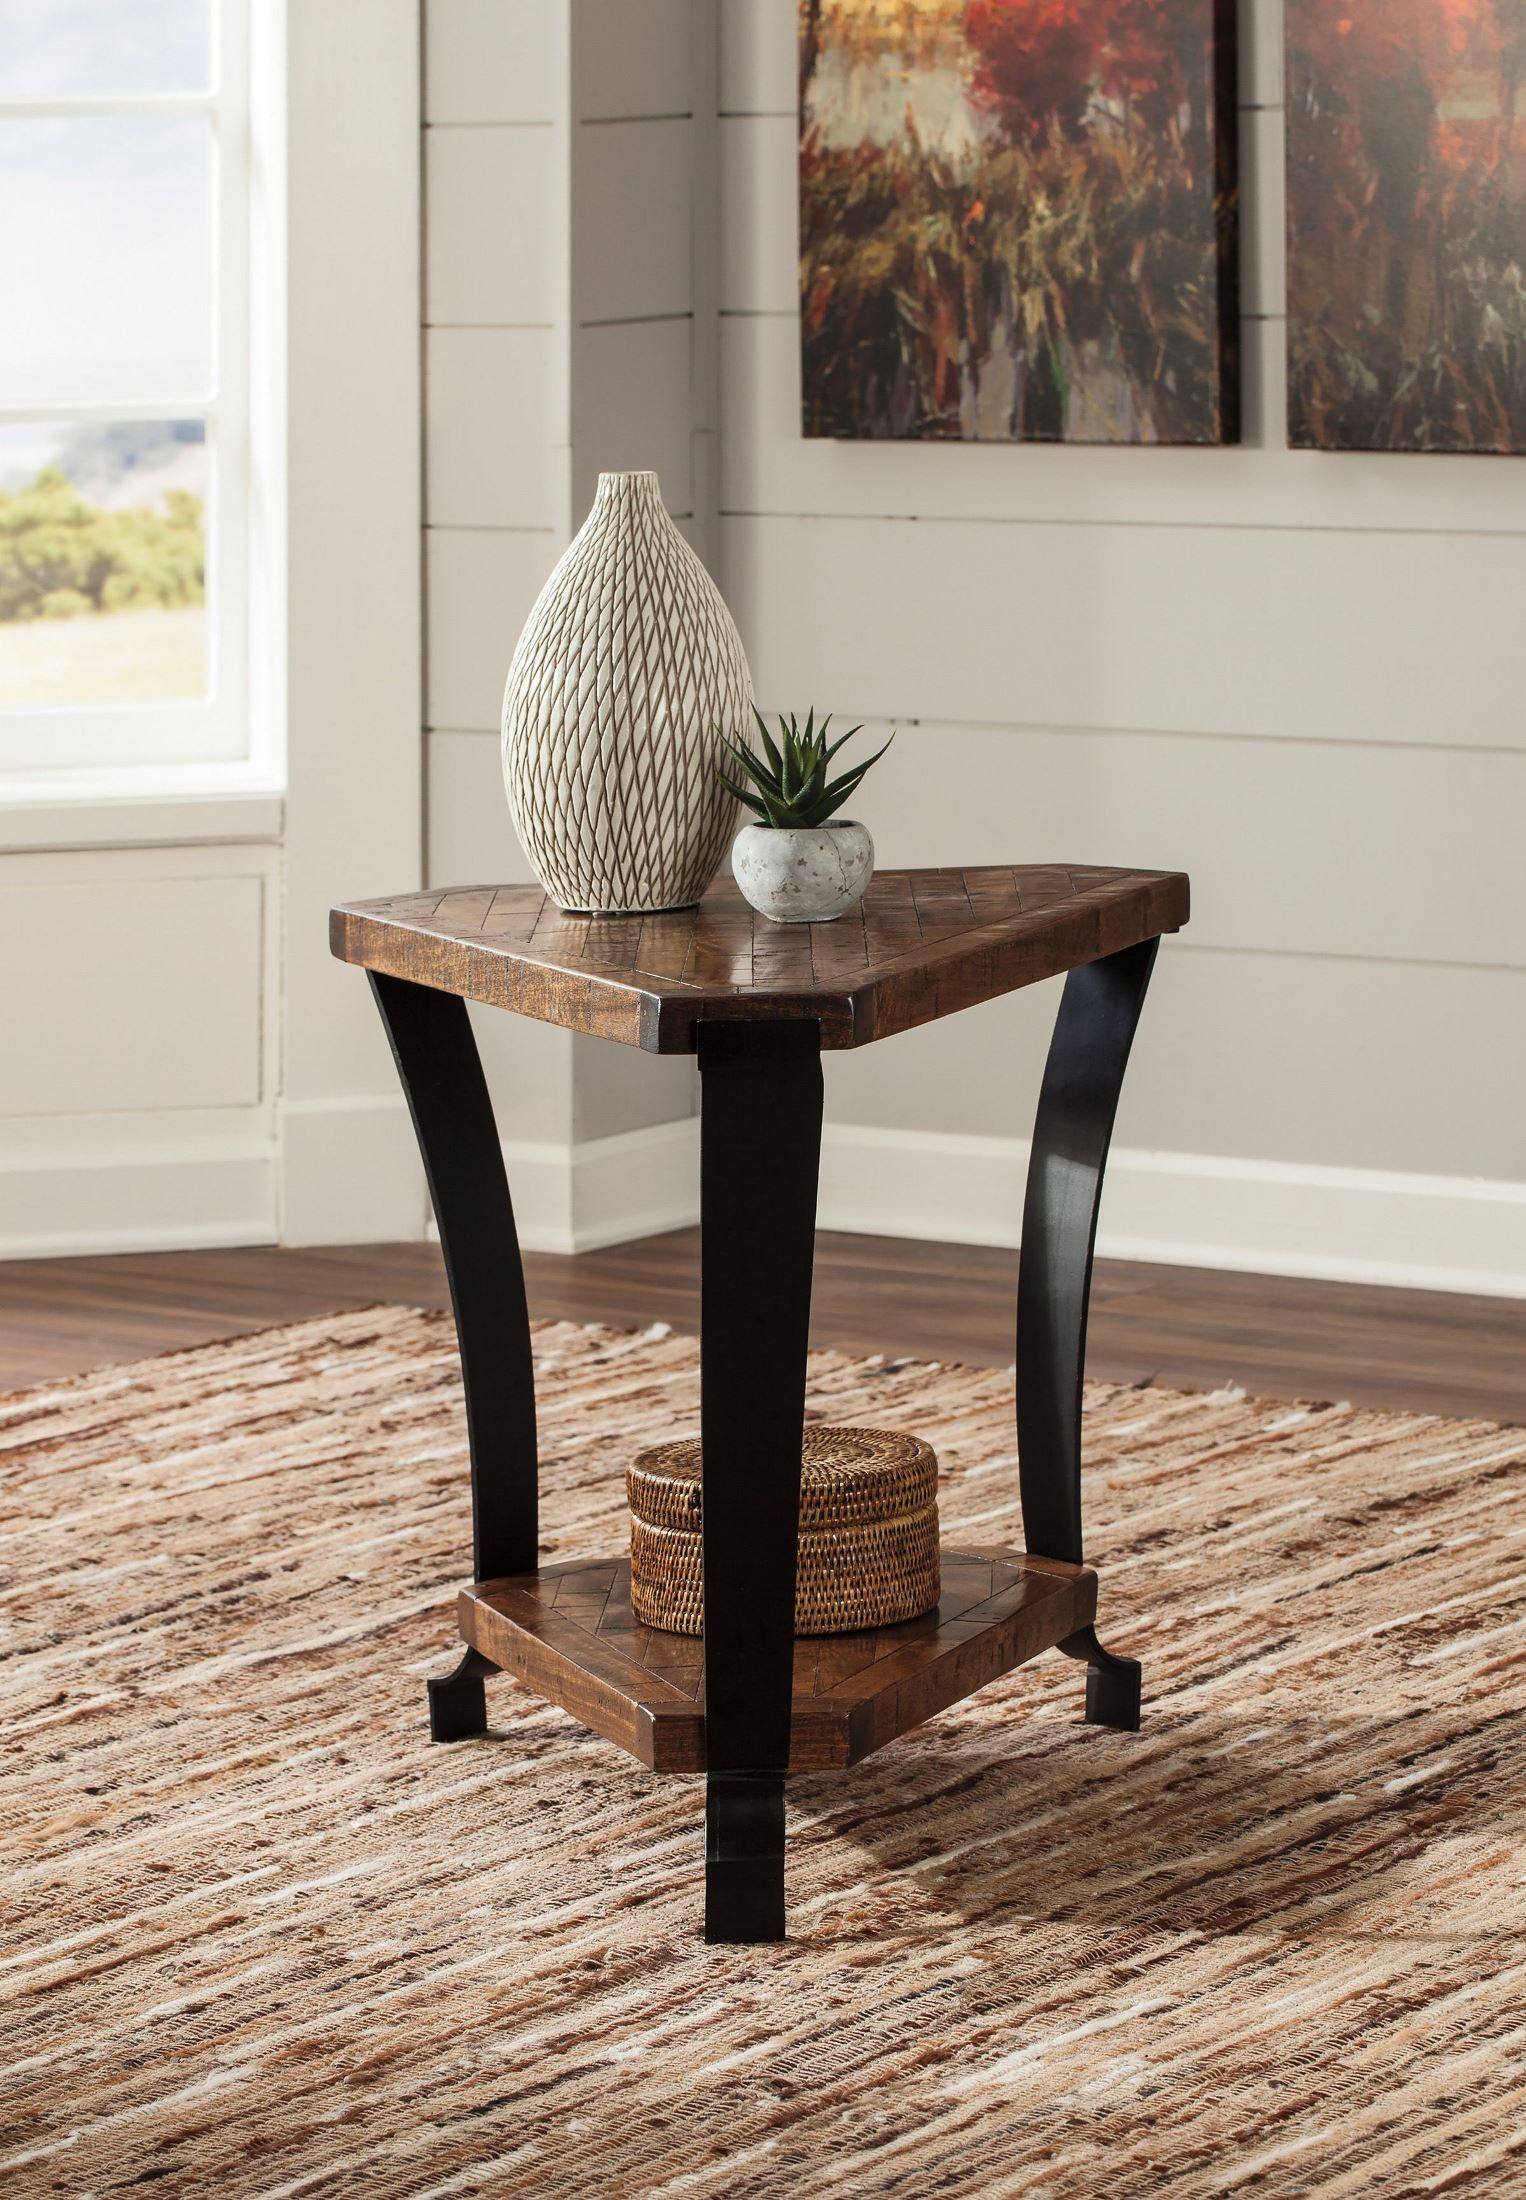 Chair Side Table Taddenfeld Medium Brown Chair Side End Table T928 7 Ashley